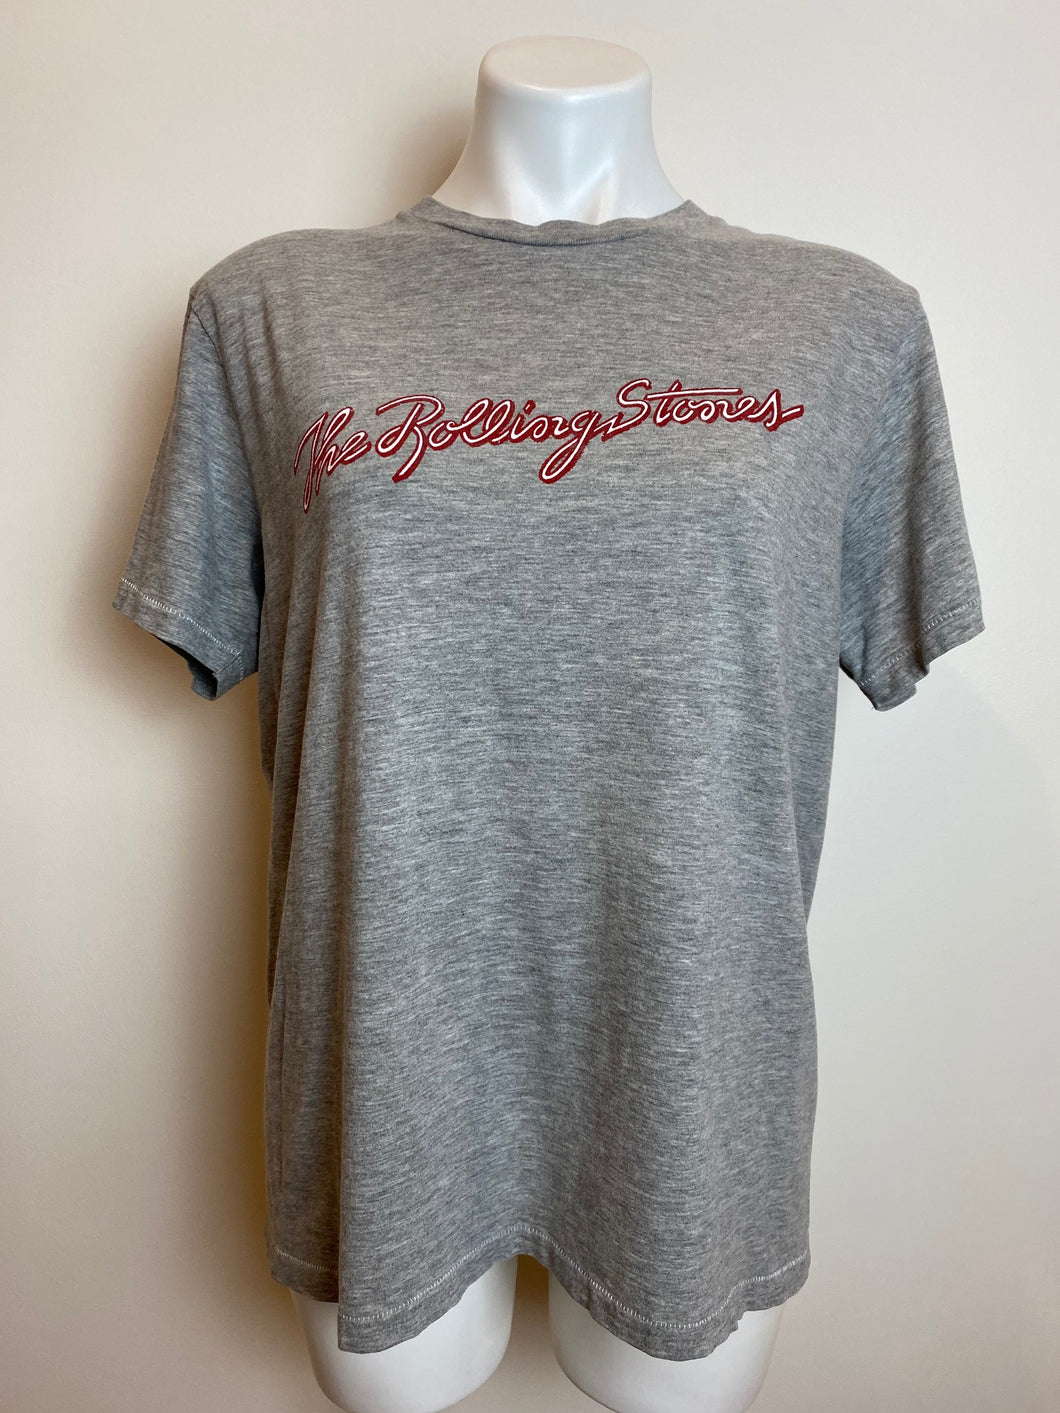 2005 Soft Rolling Stones Tee